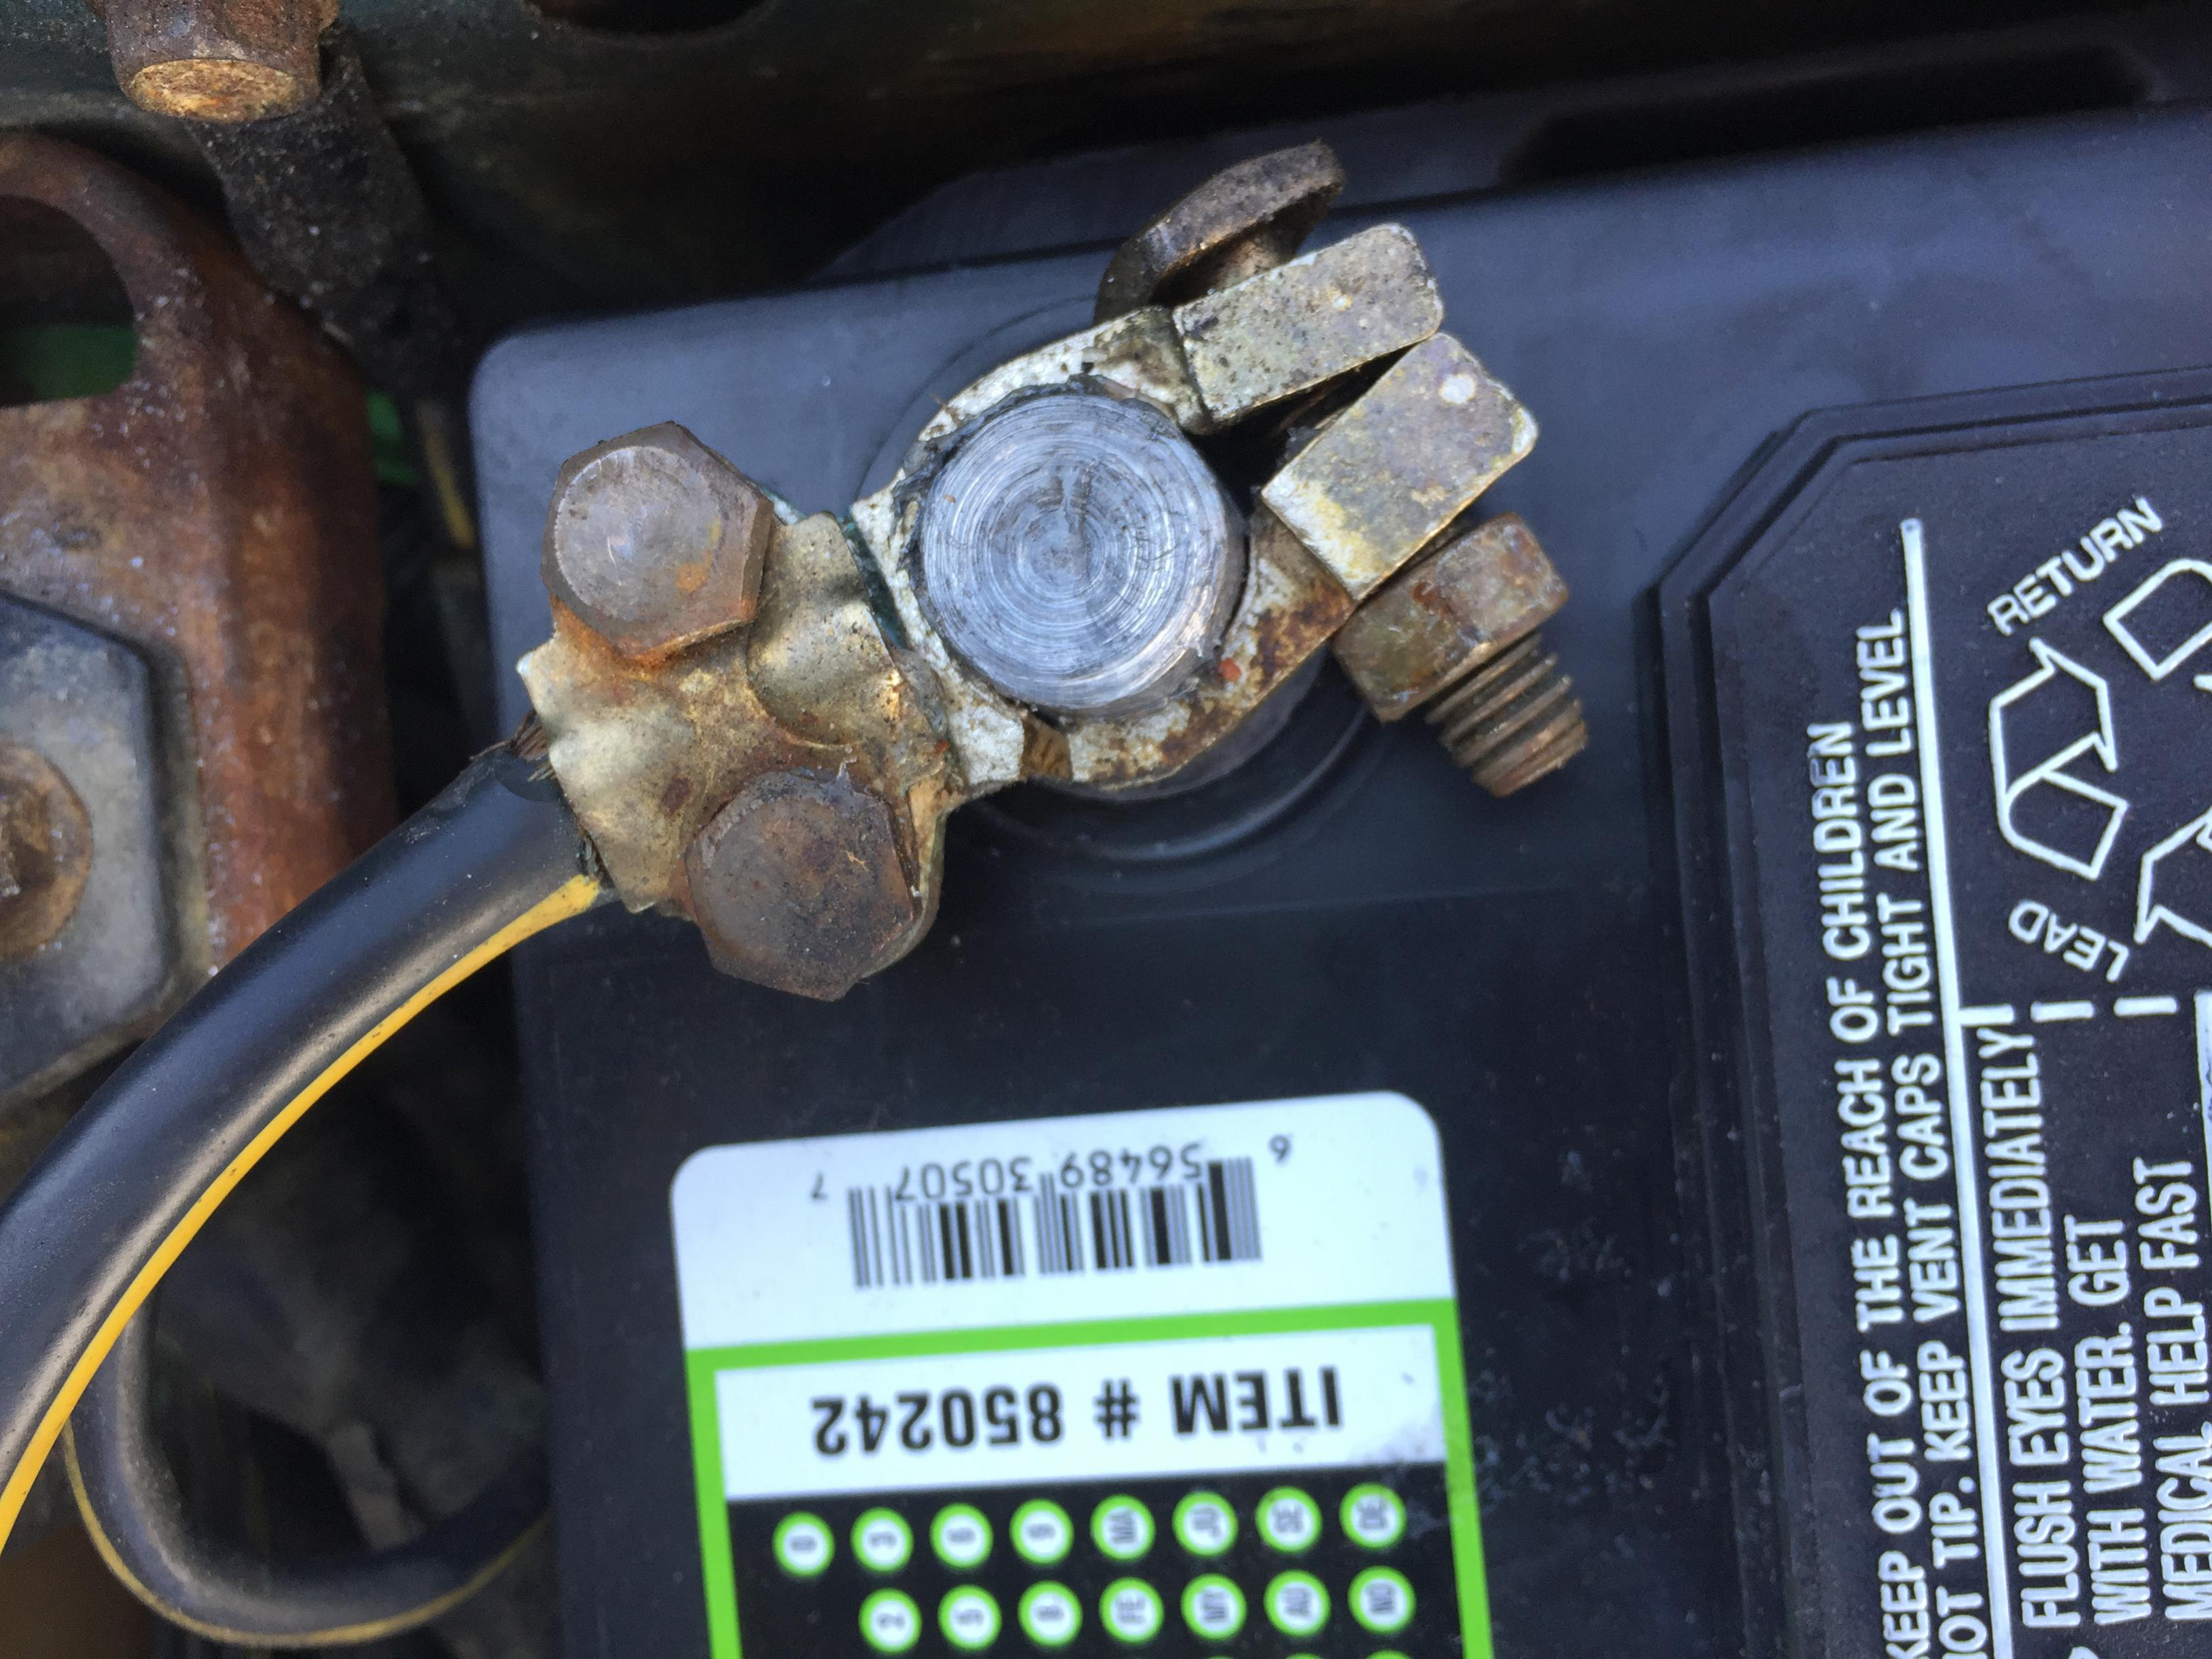 Sources for negative battery terminal clamp? | Subaru Outback Forums